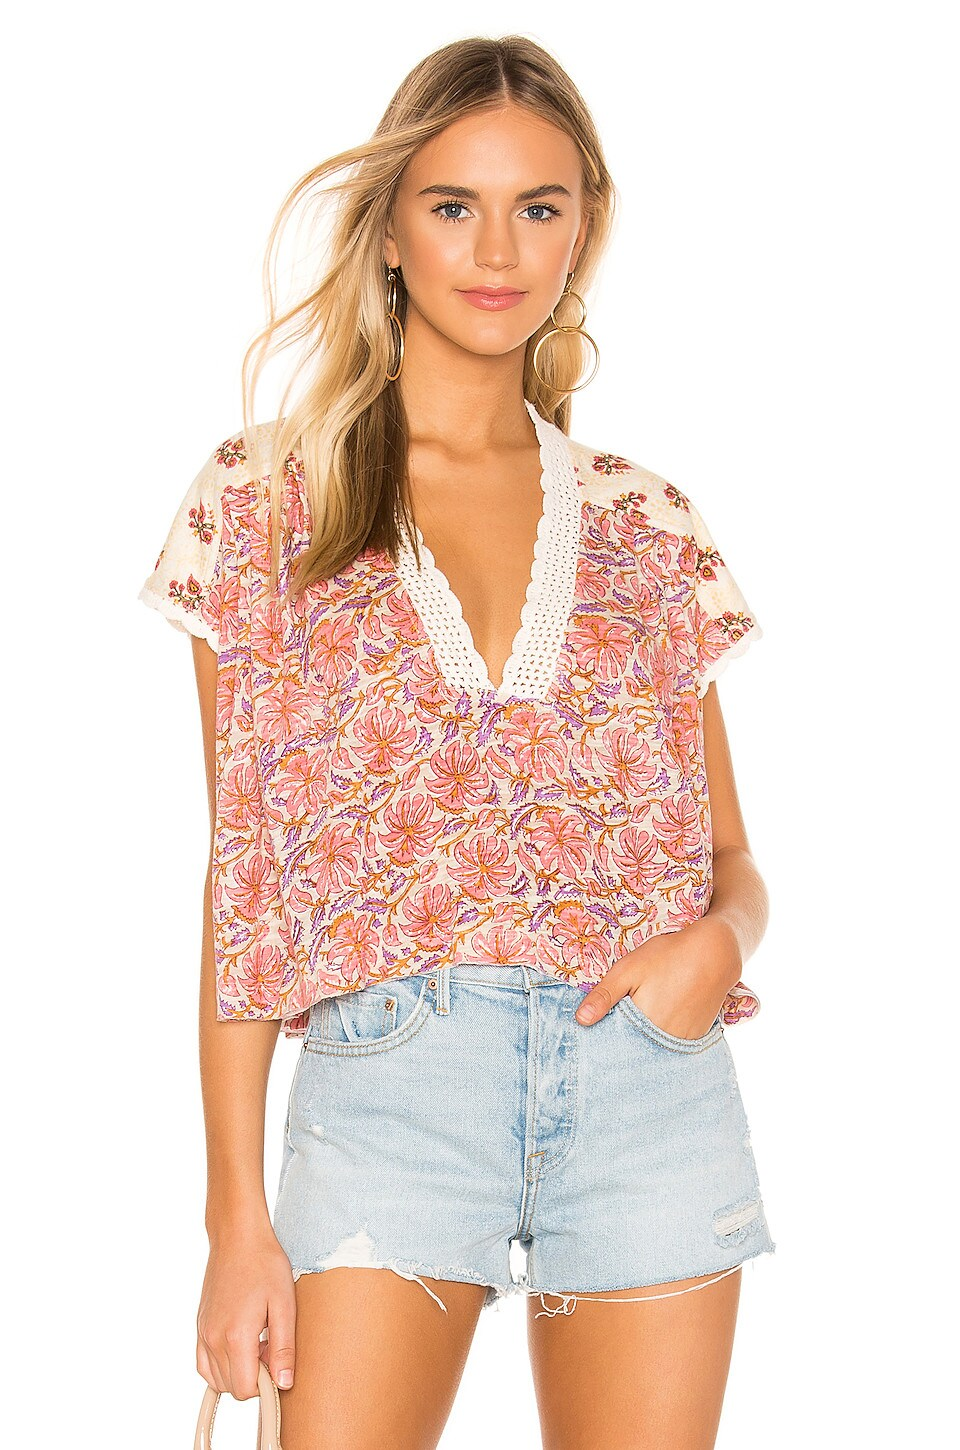 Free People Leilani Blouse in Ivory